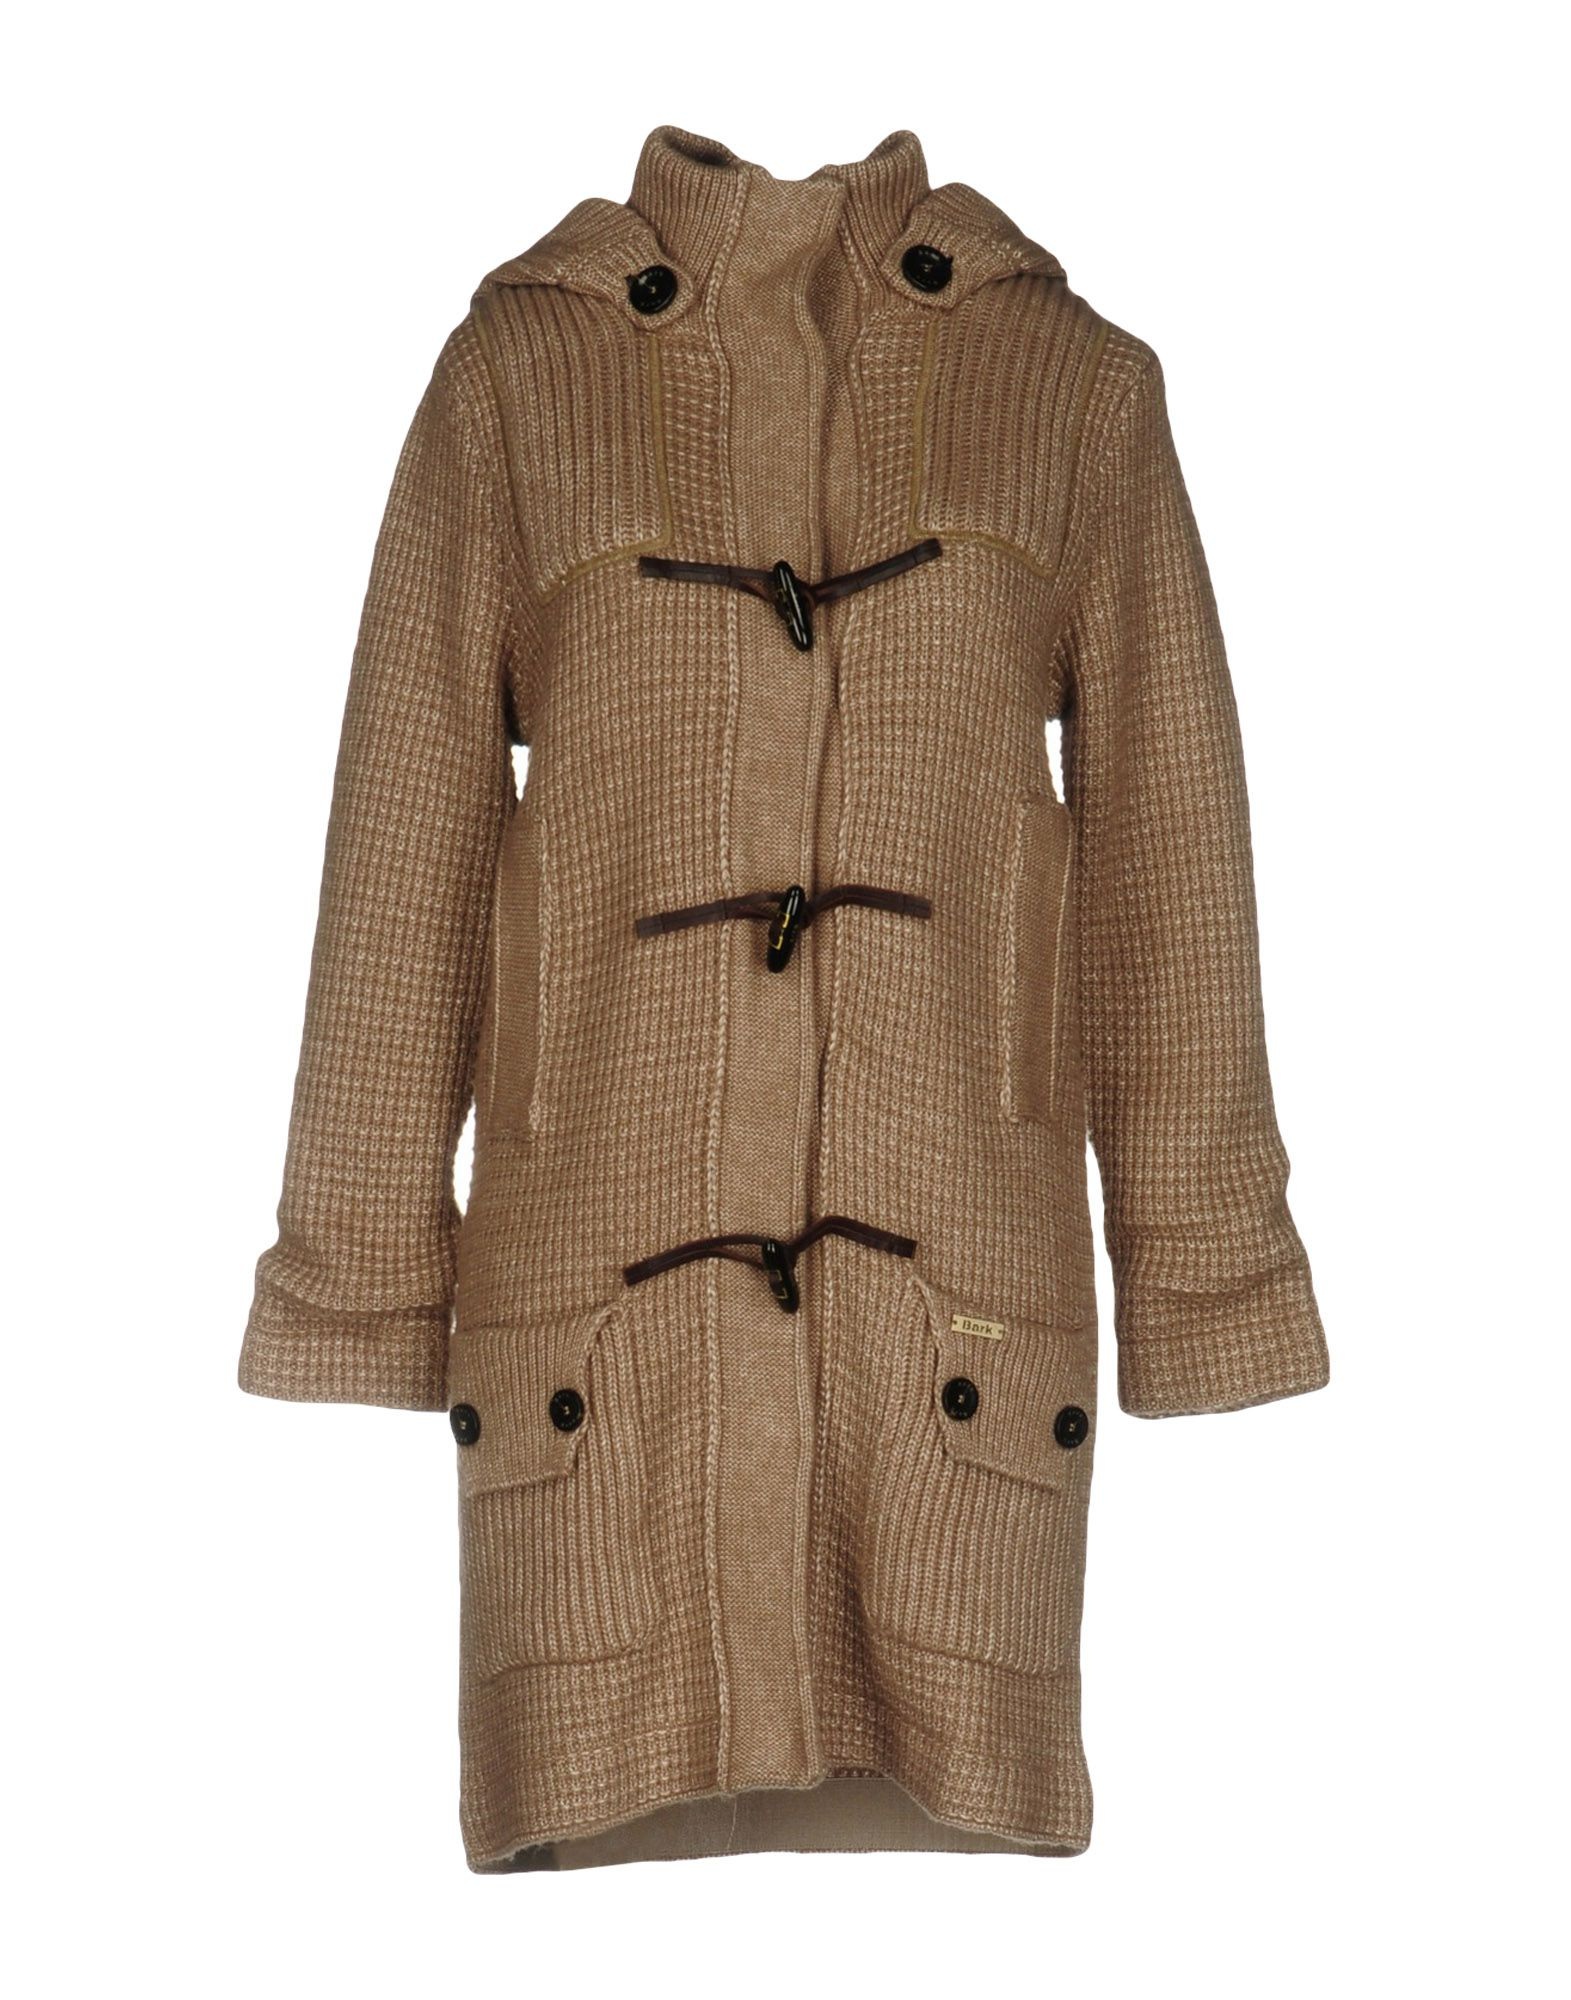 BARK Coat in Camel